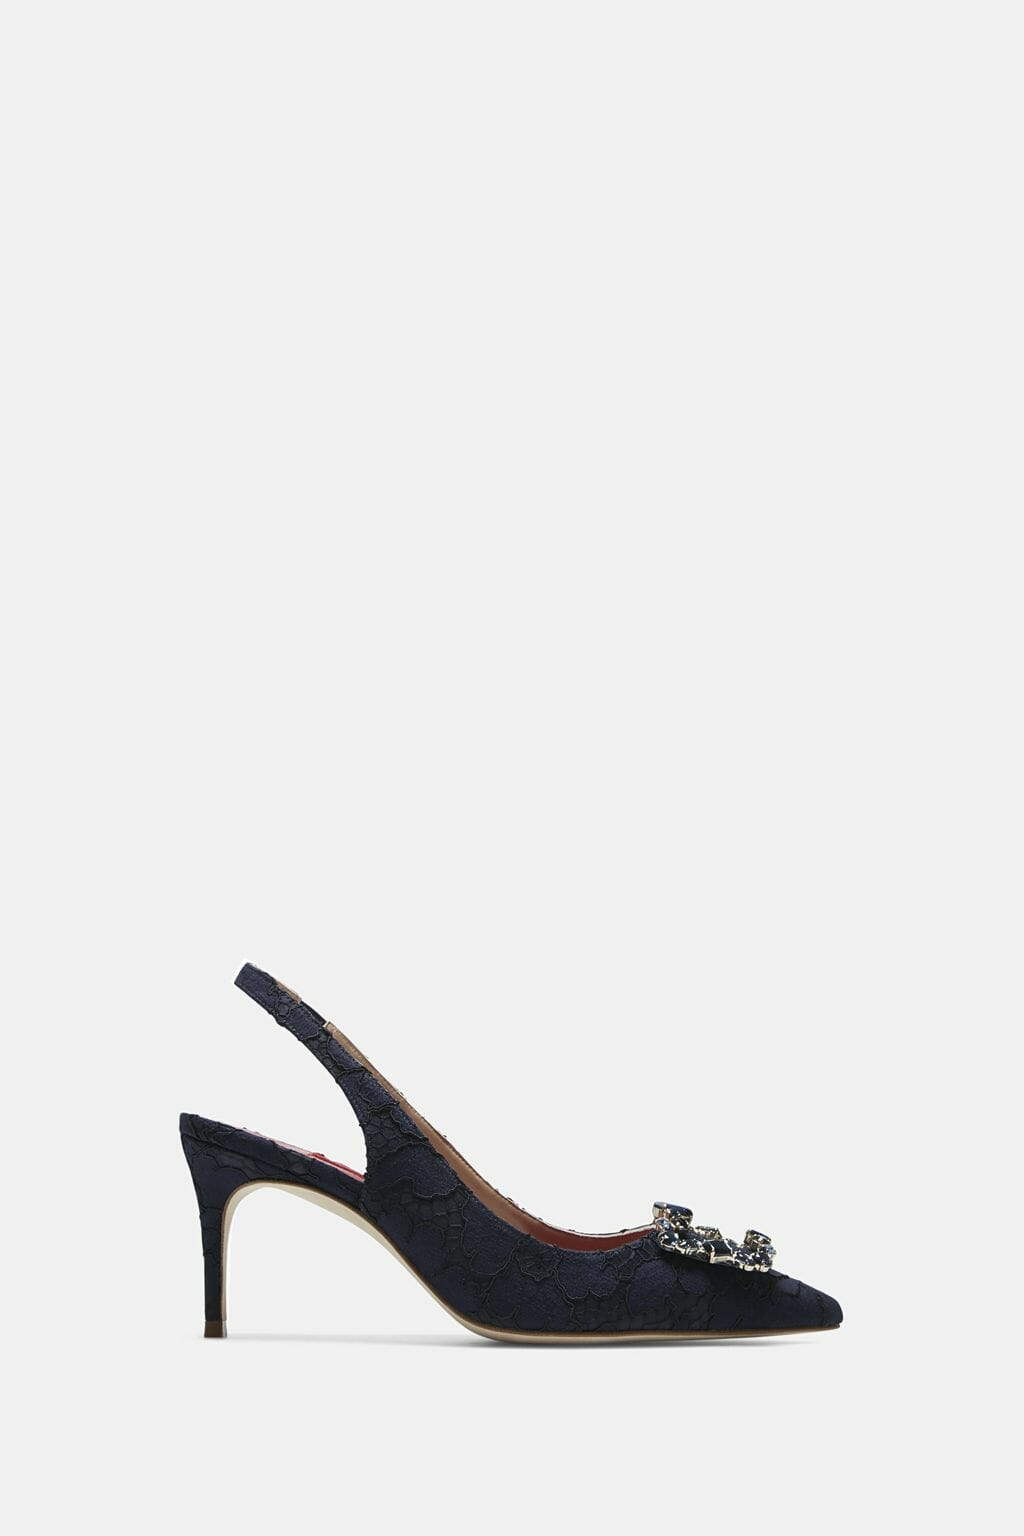 CH-Carolina-herrera-shoes-collection-Spring-Summer-2018-shoe-24